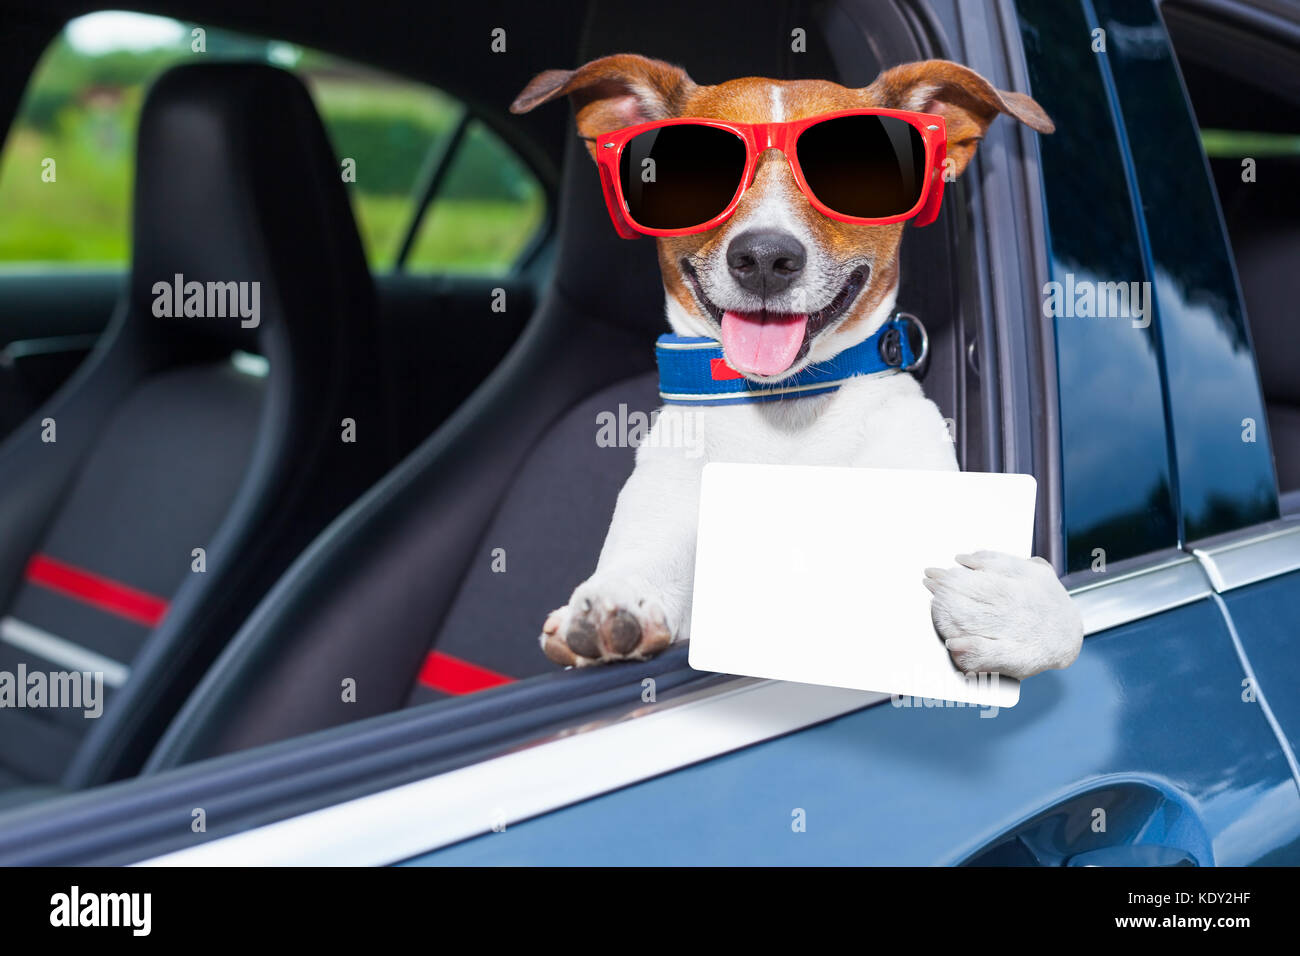 dog leaning out the car window showing a blank and empty drivers license - Stock Image